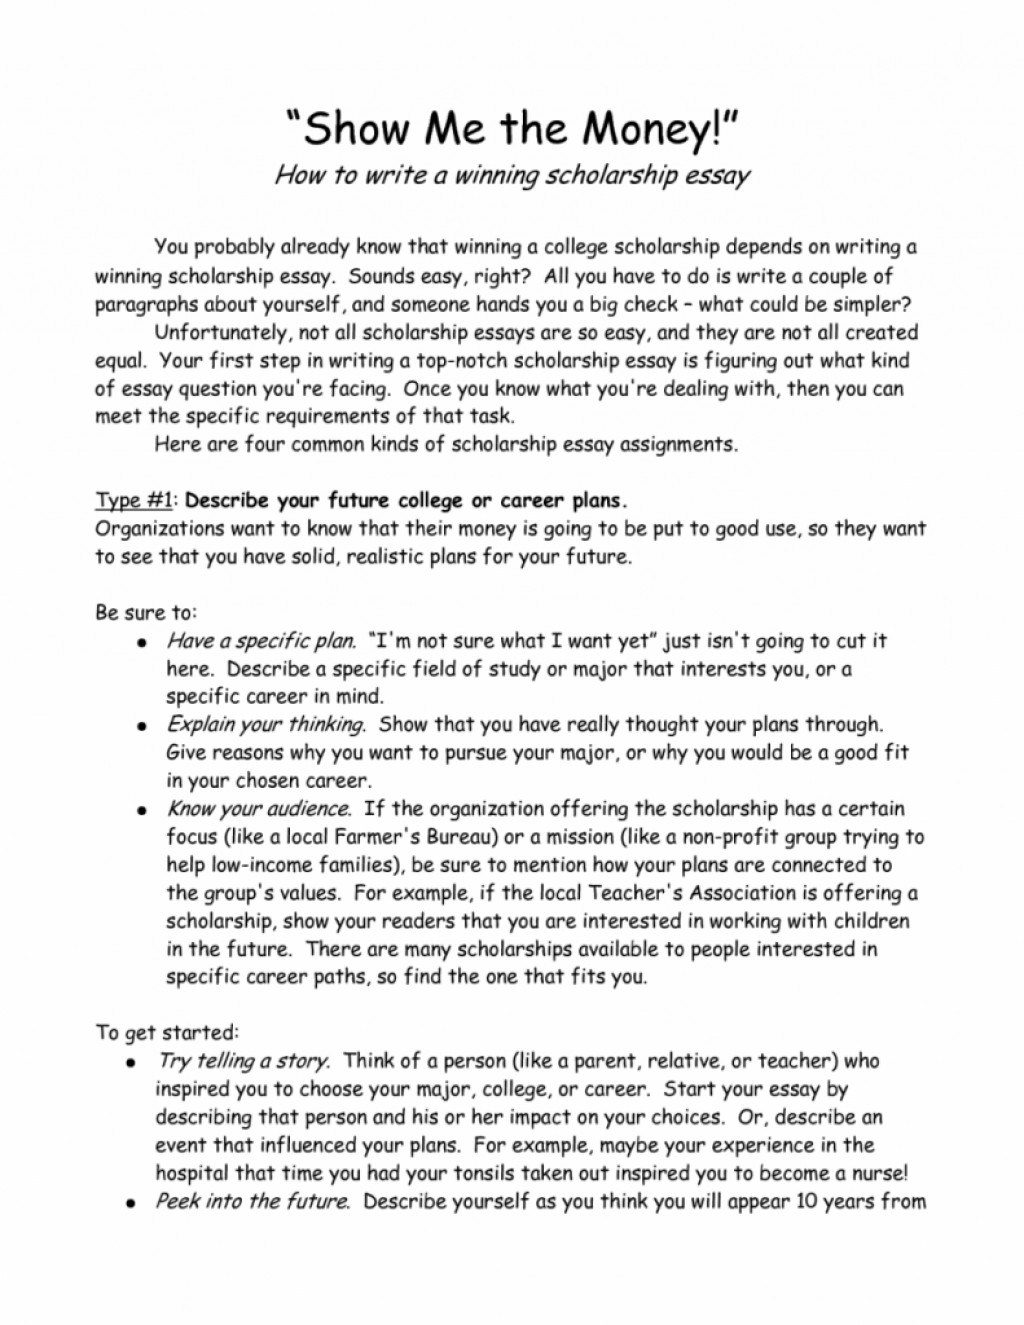 014 Travel Essay Example On Travelling The School Bus Examples How To Write Business Cover Letter Experience Sample Tagalog Journal Time Writing Photo Pdf Unique Definition Submissions Large